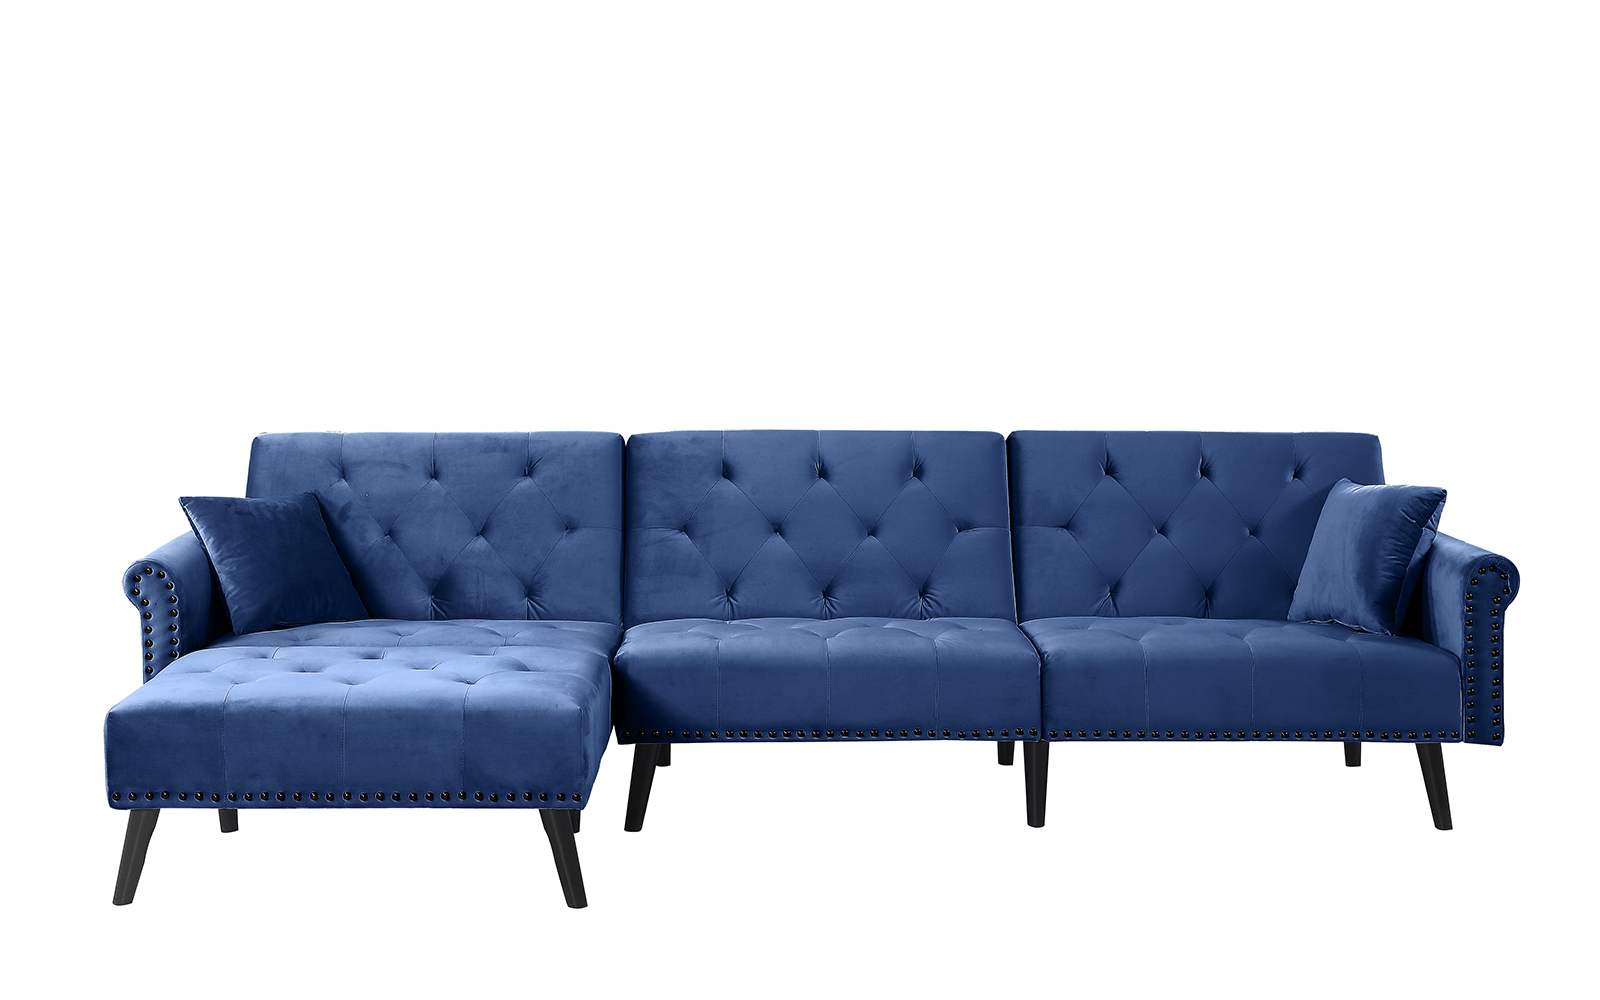 usa made sleeper sofa fabric sectional sofas vancouver velvet cococohome clic chesterfield